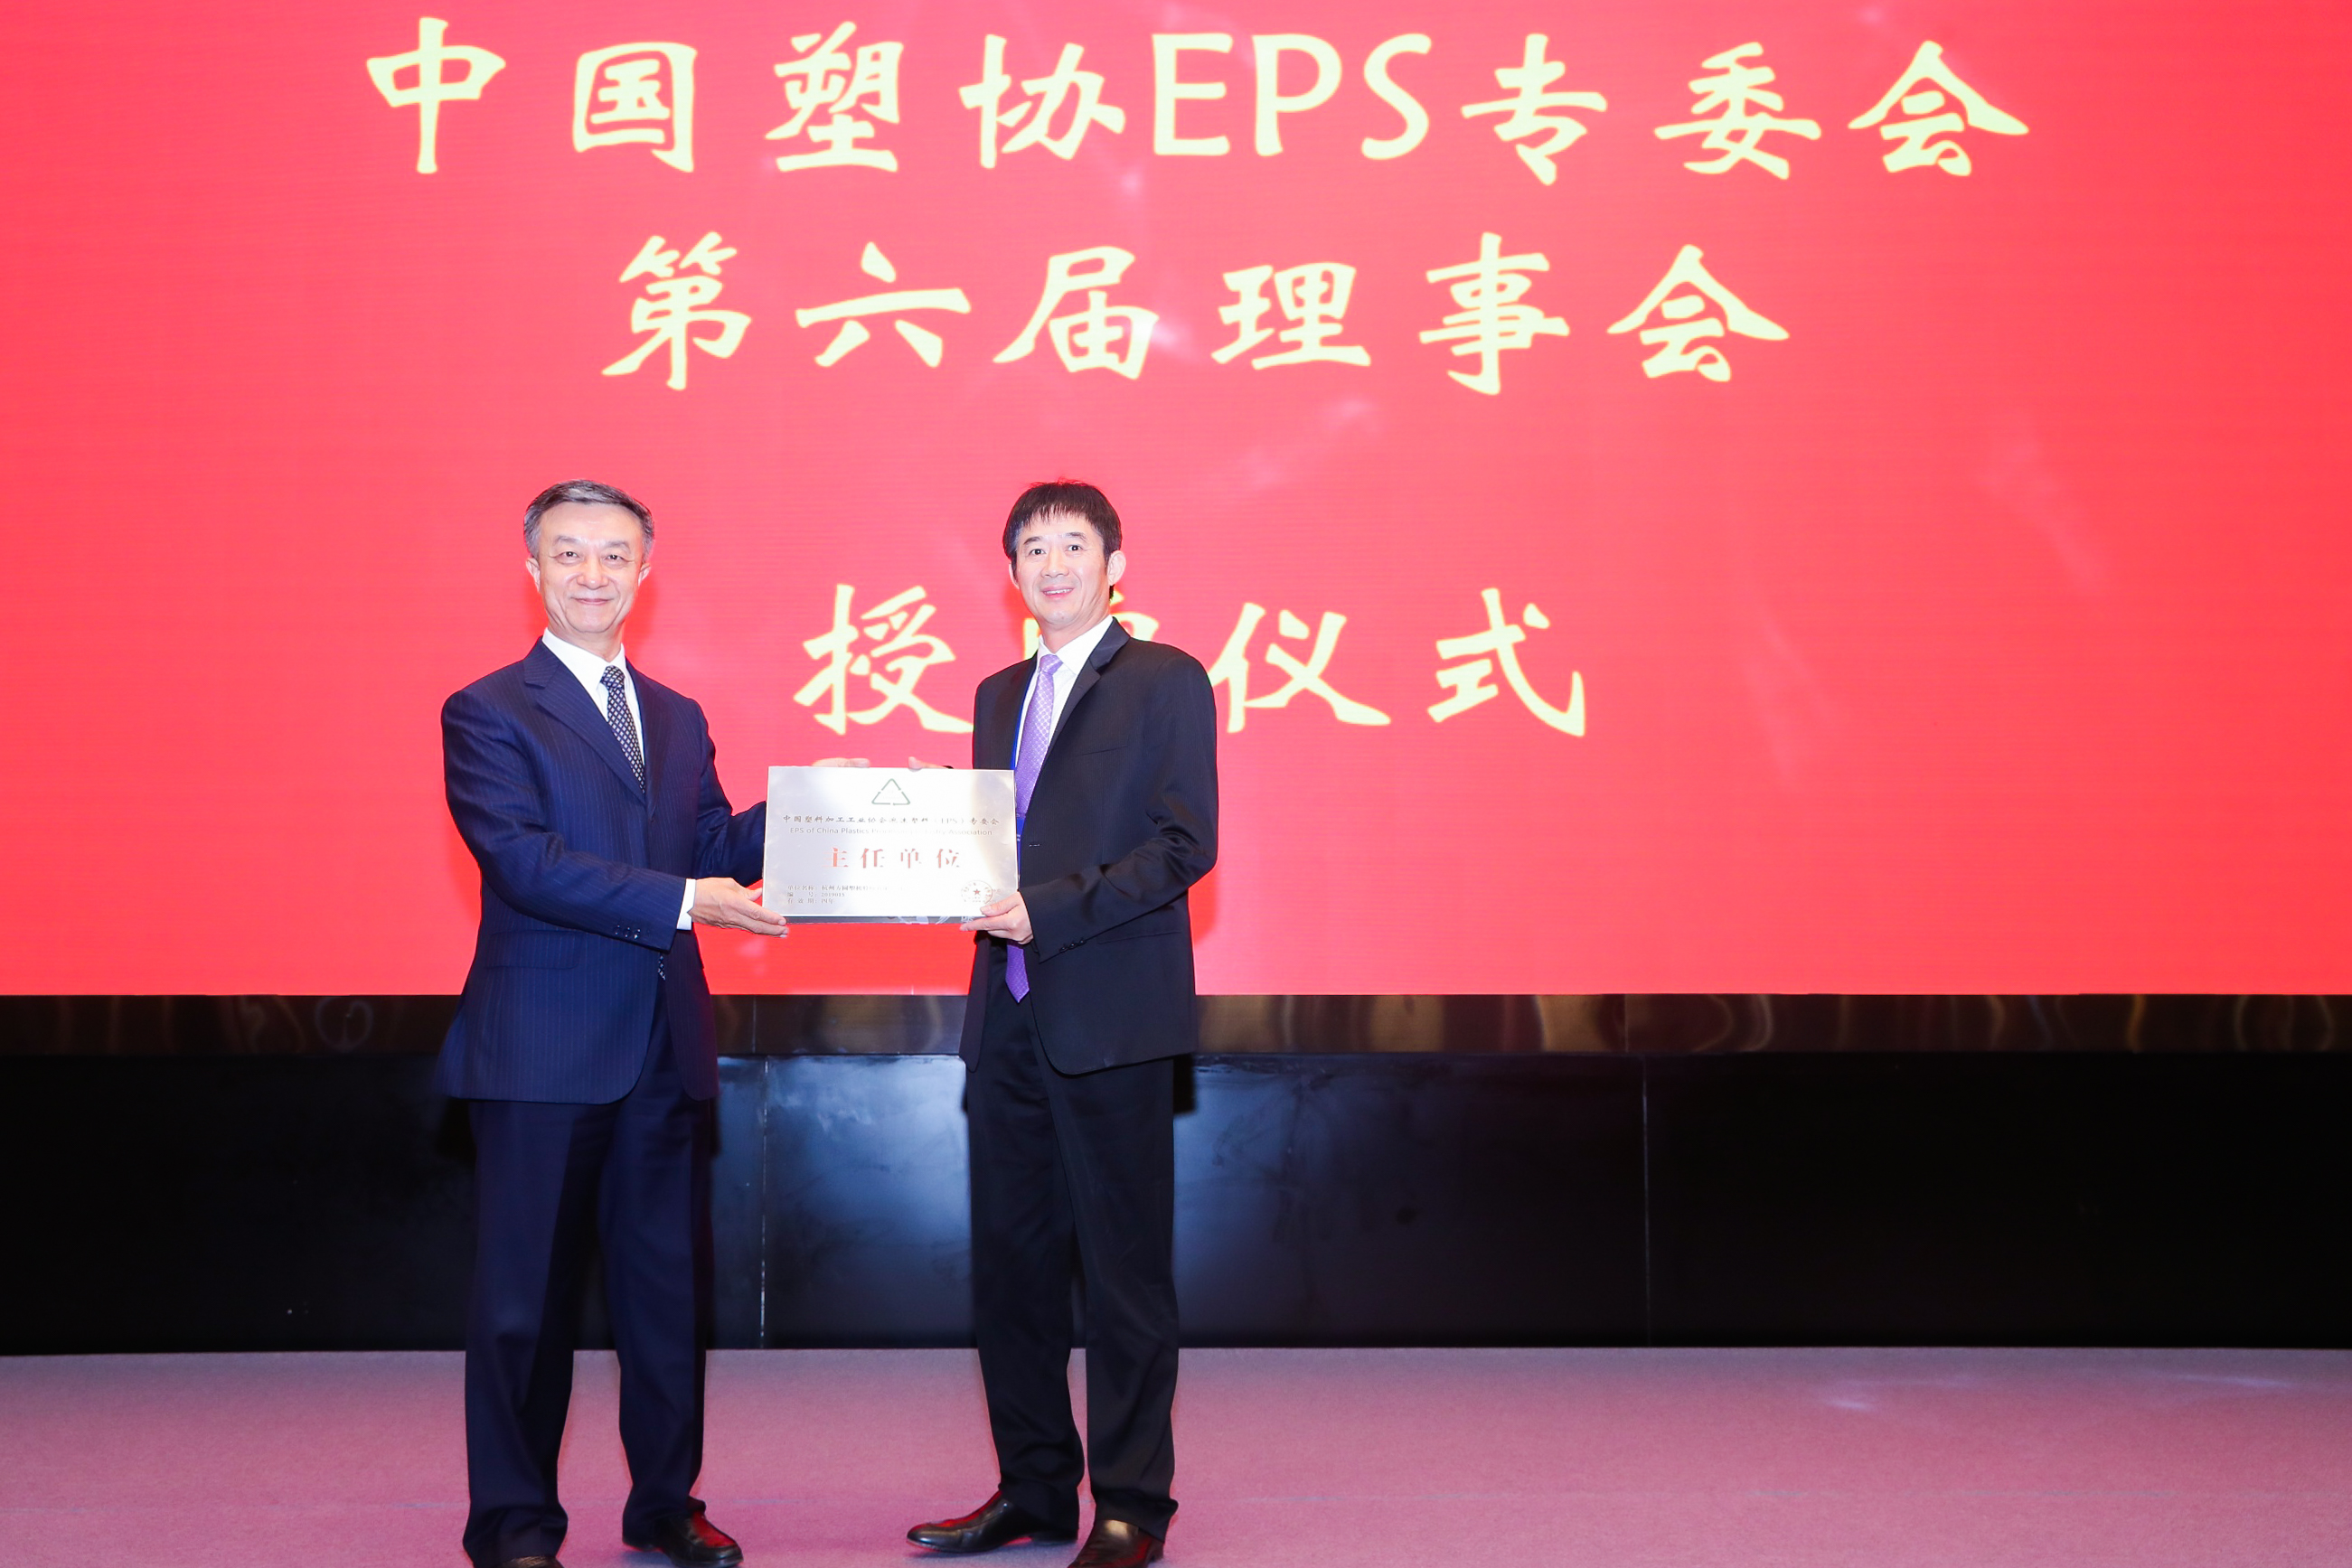 Mr. Yuan Guoqing,The owner of Fangyuan company, is awarded chairman of the EPS Committee of China Plastics Processing Industry Association since 2019.